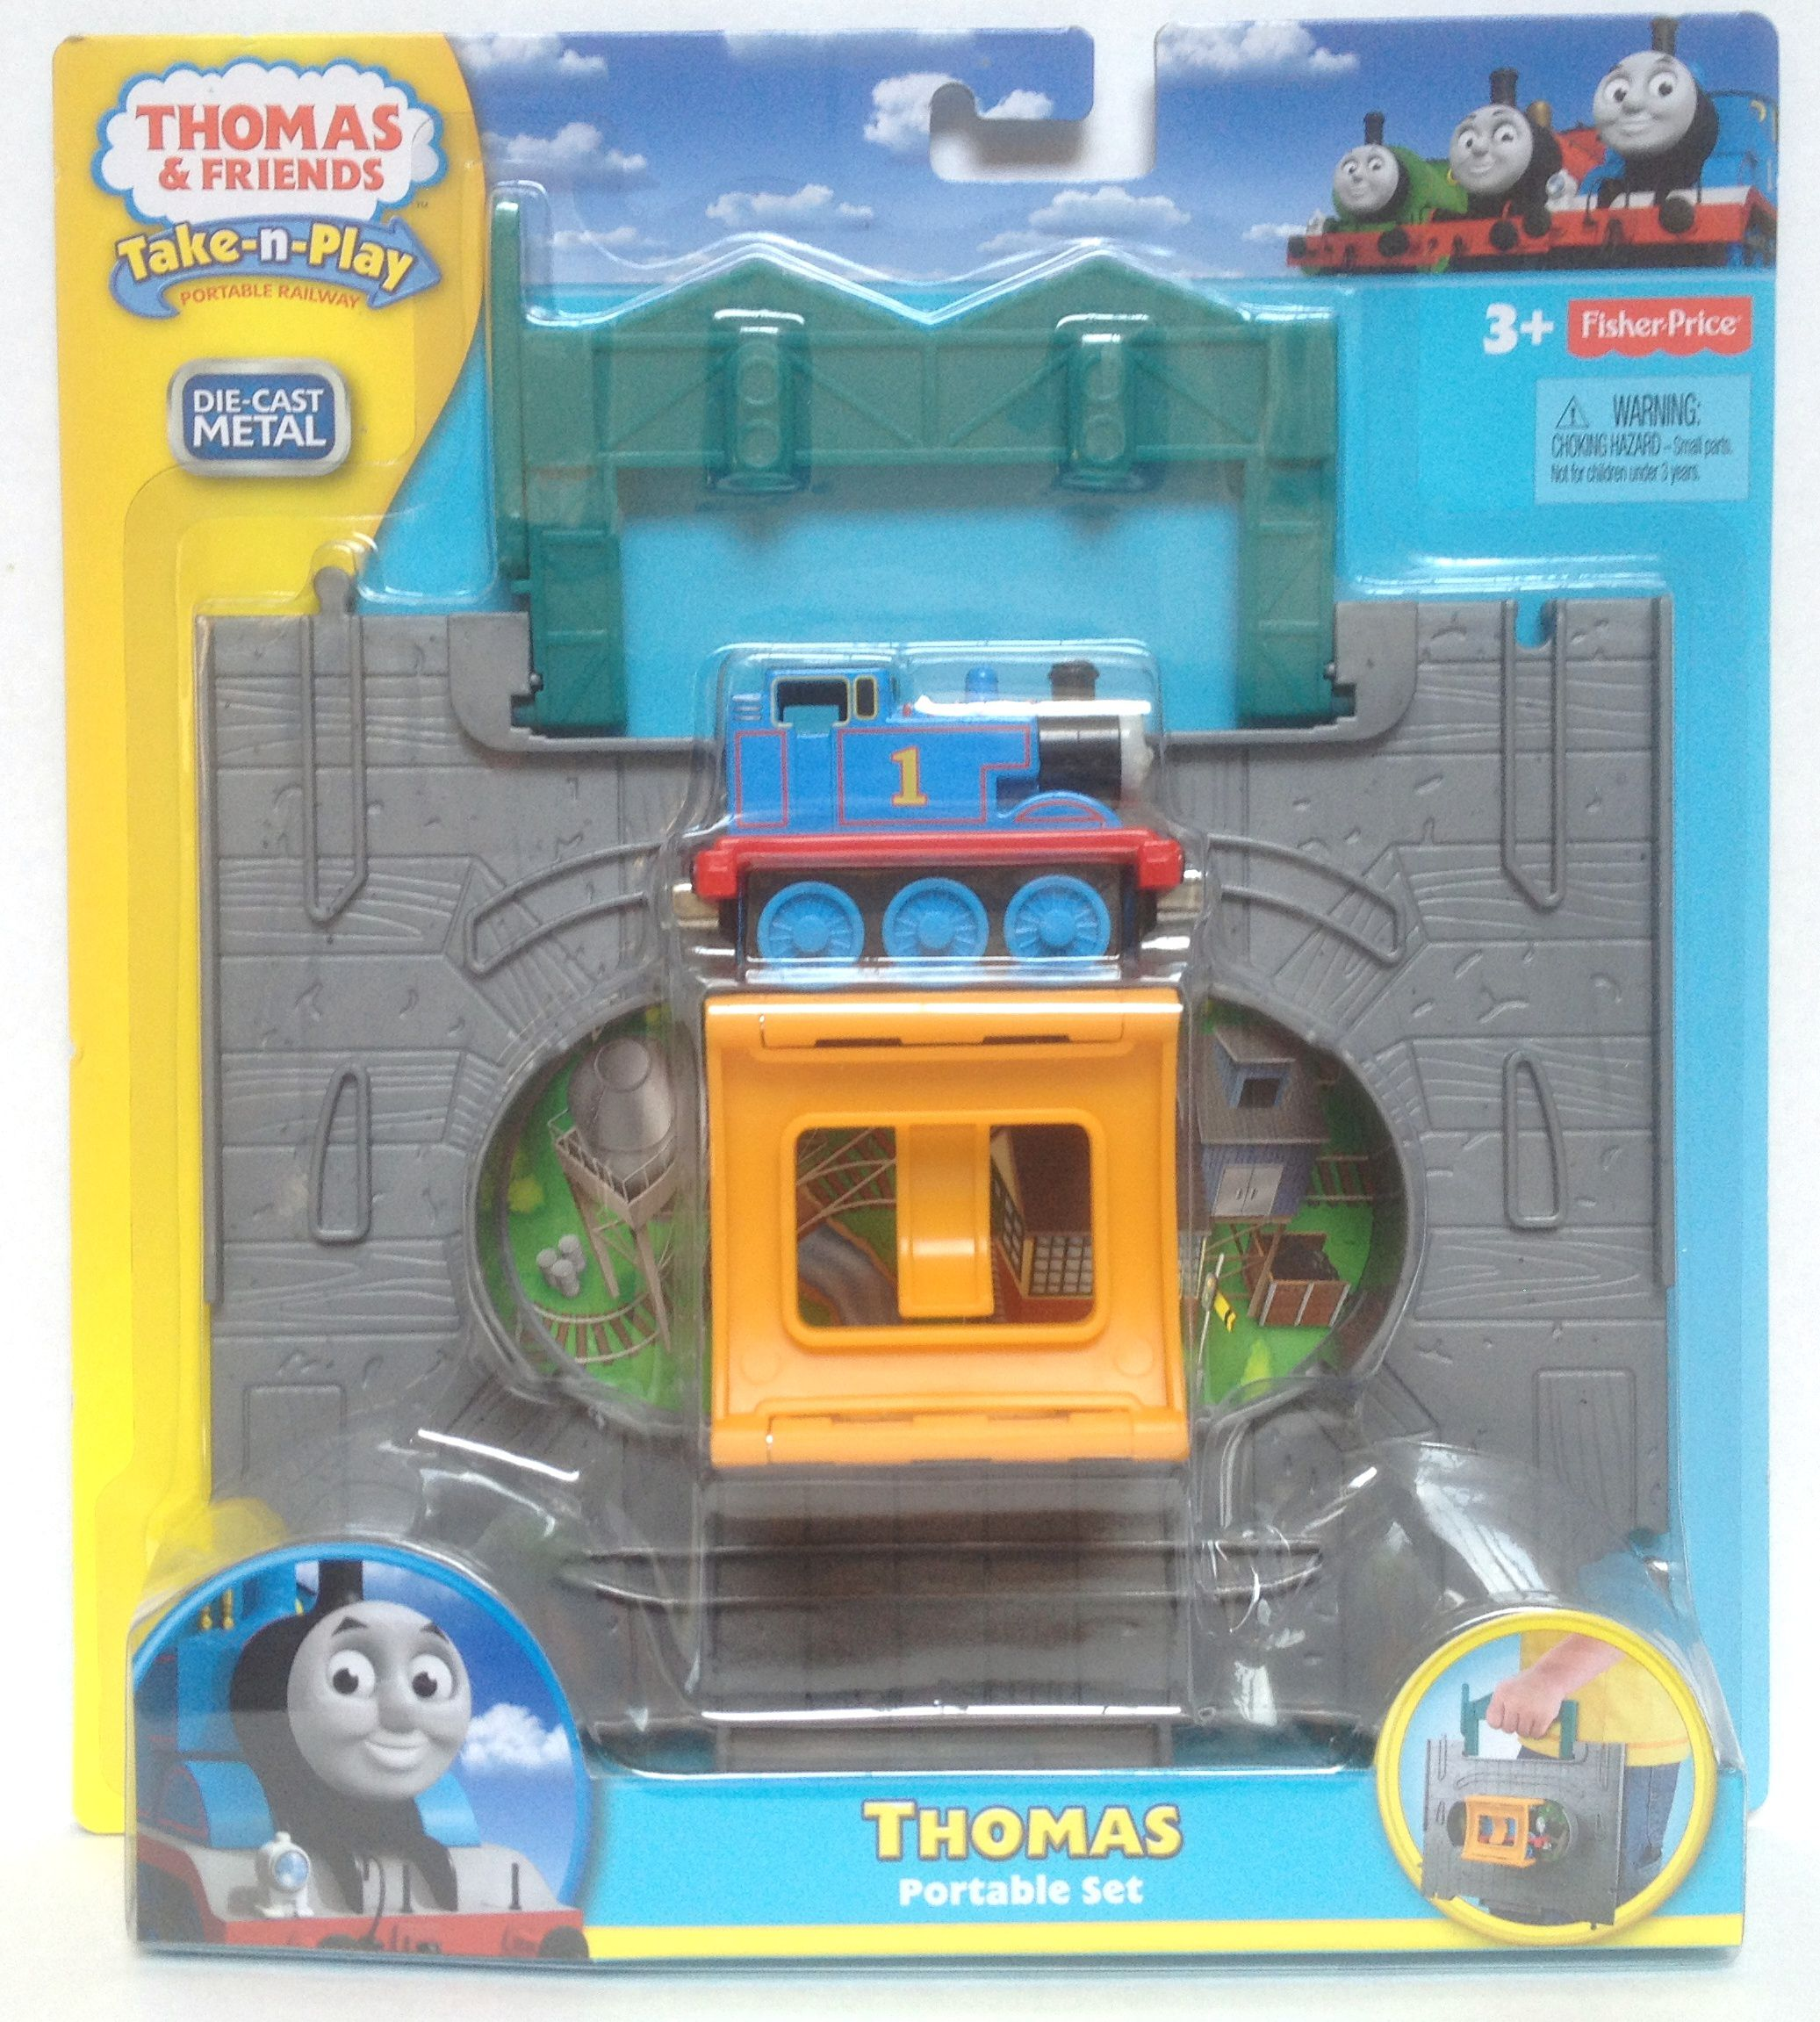 Thomas Take n Play Portable Set